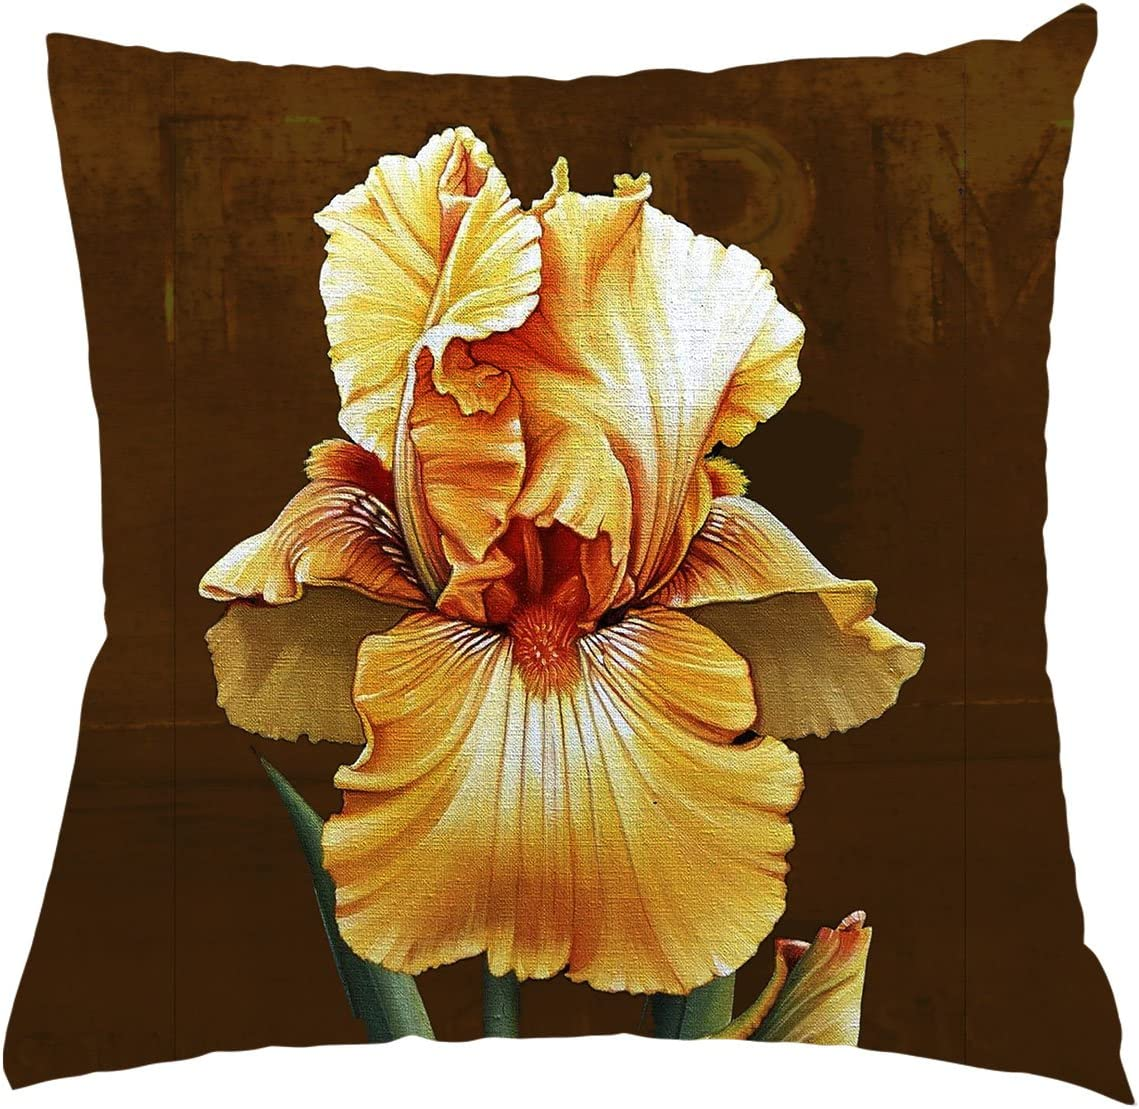 Amazon Com Flower Throw Pillow Cover Beautiful Flower Gold Lris Background For Couch Sofa Bed Car Seats Home Decorative Throw Pillow Case 24 X24 Home Kitchen